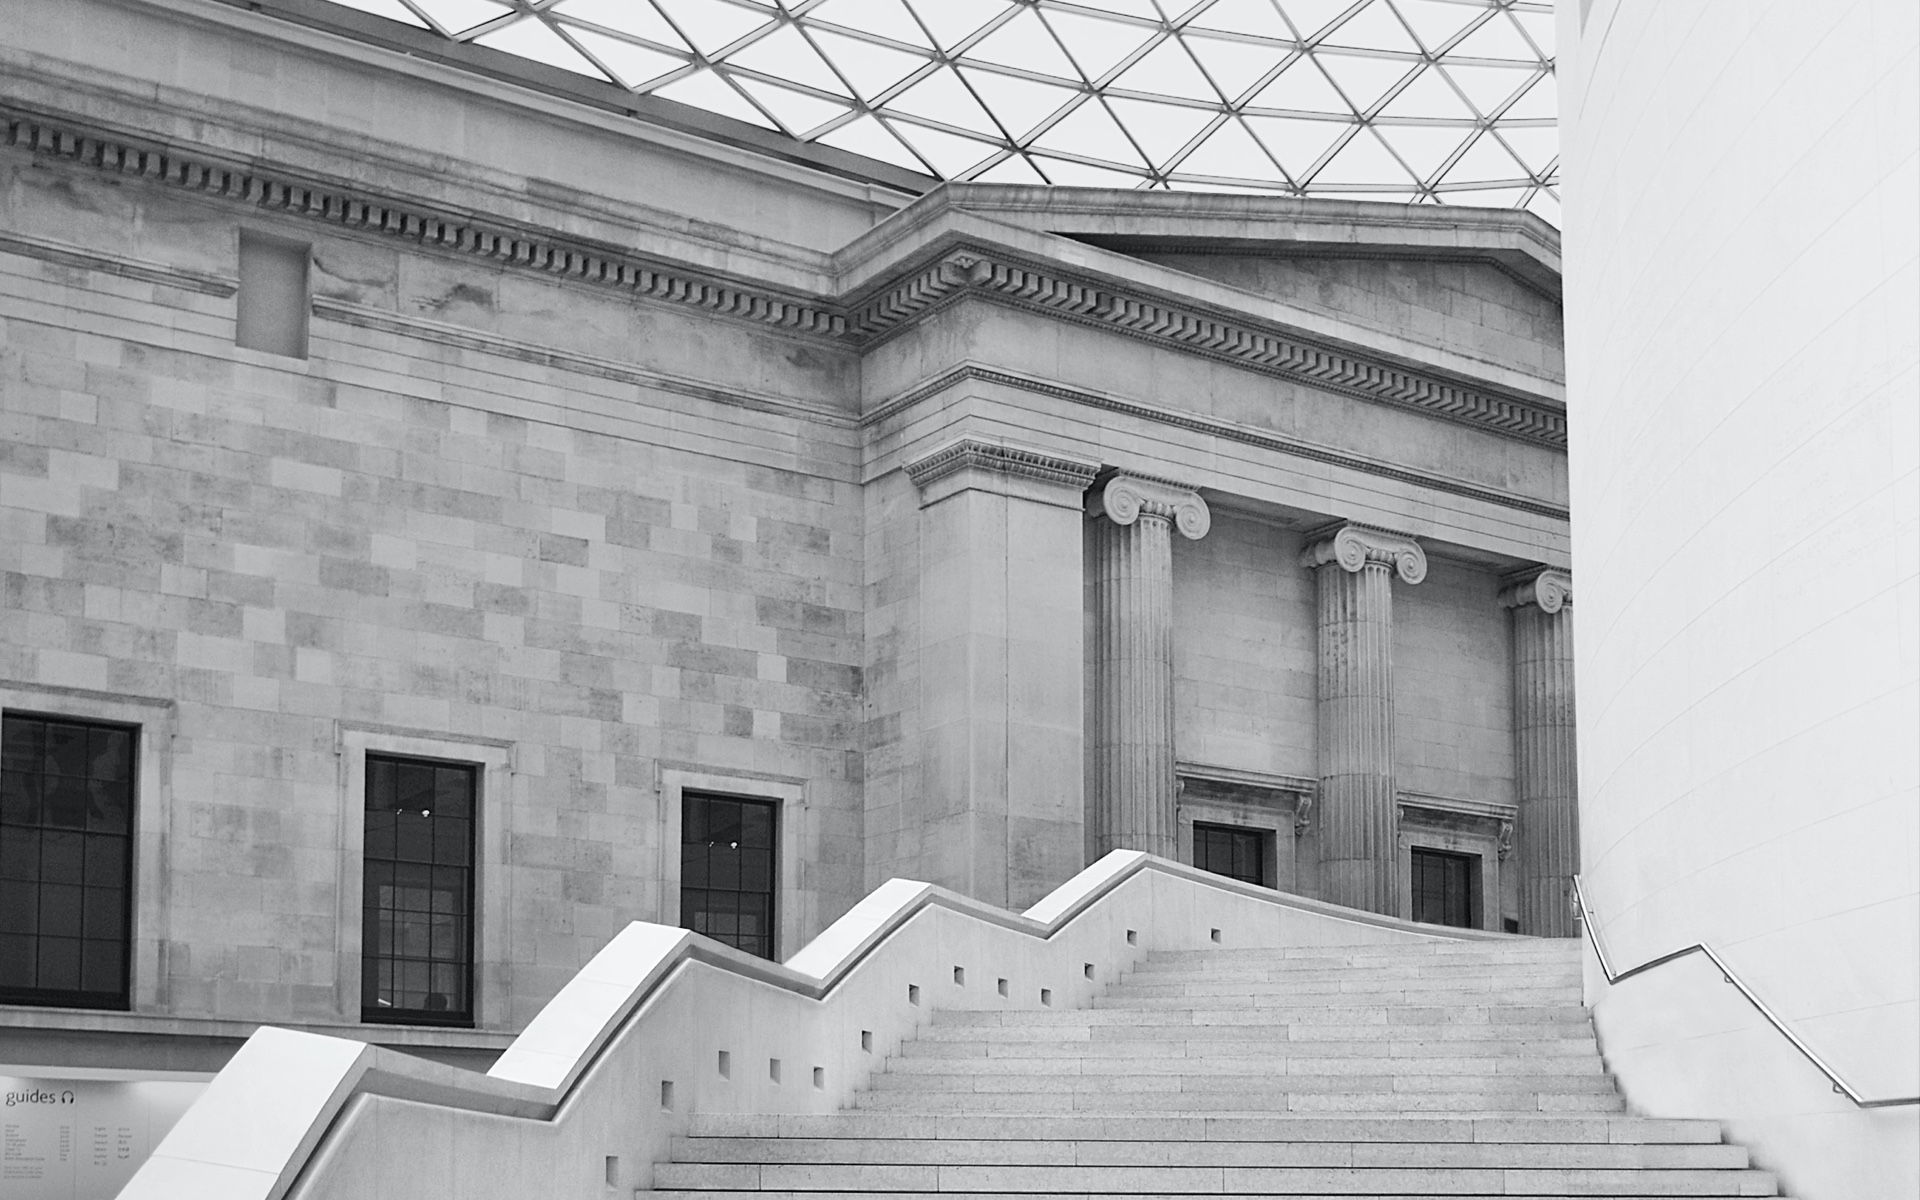 Philip_Mawer_British_Museum_02